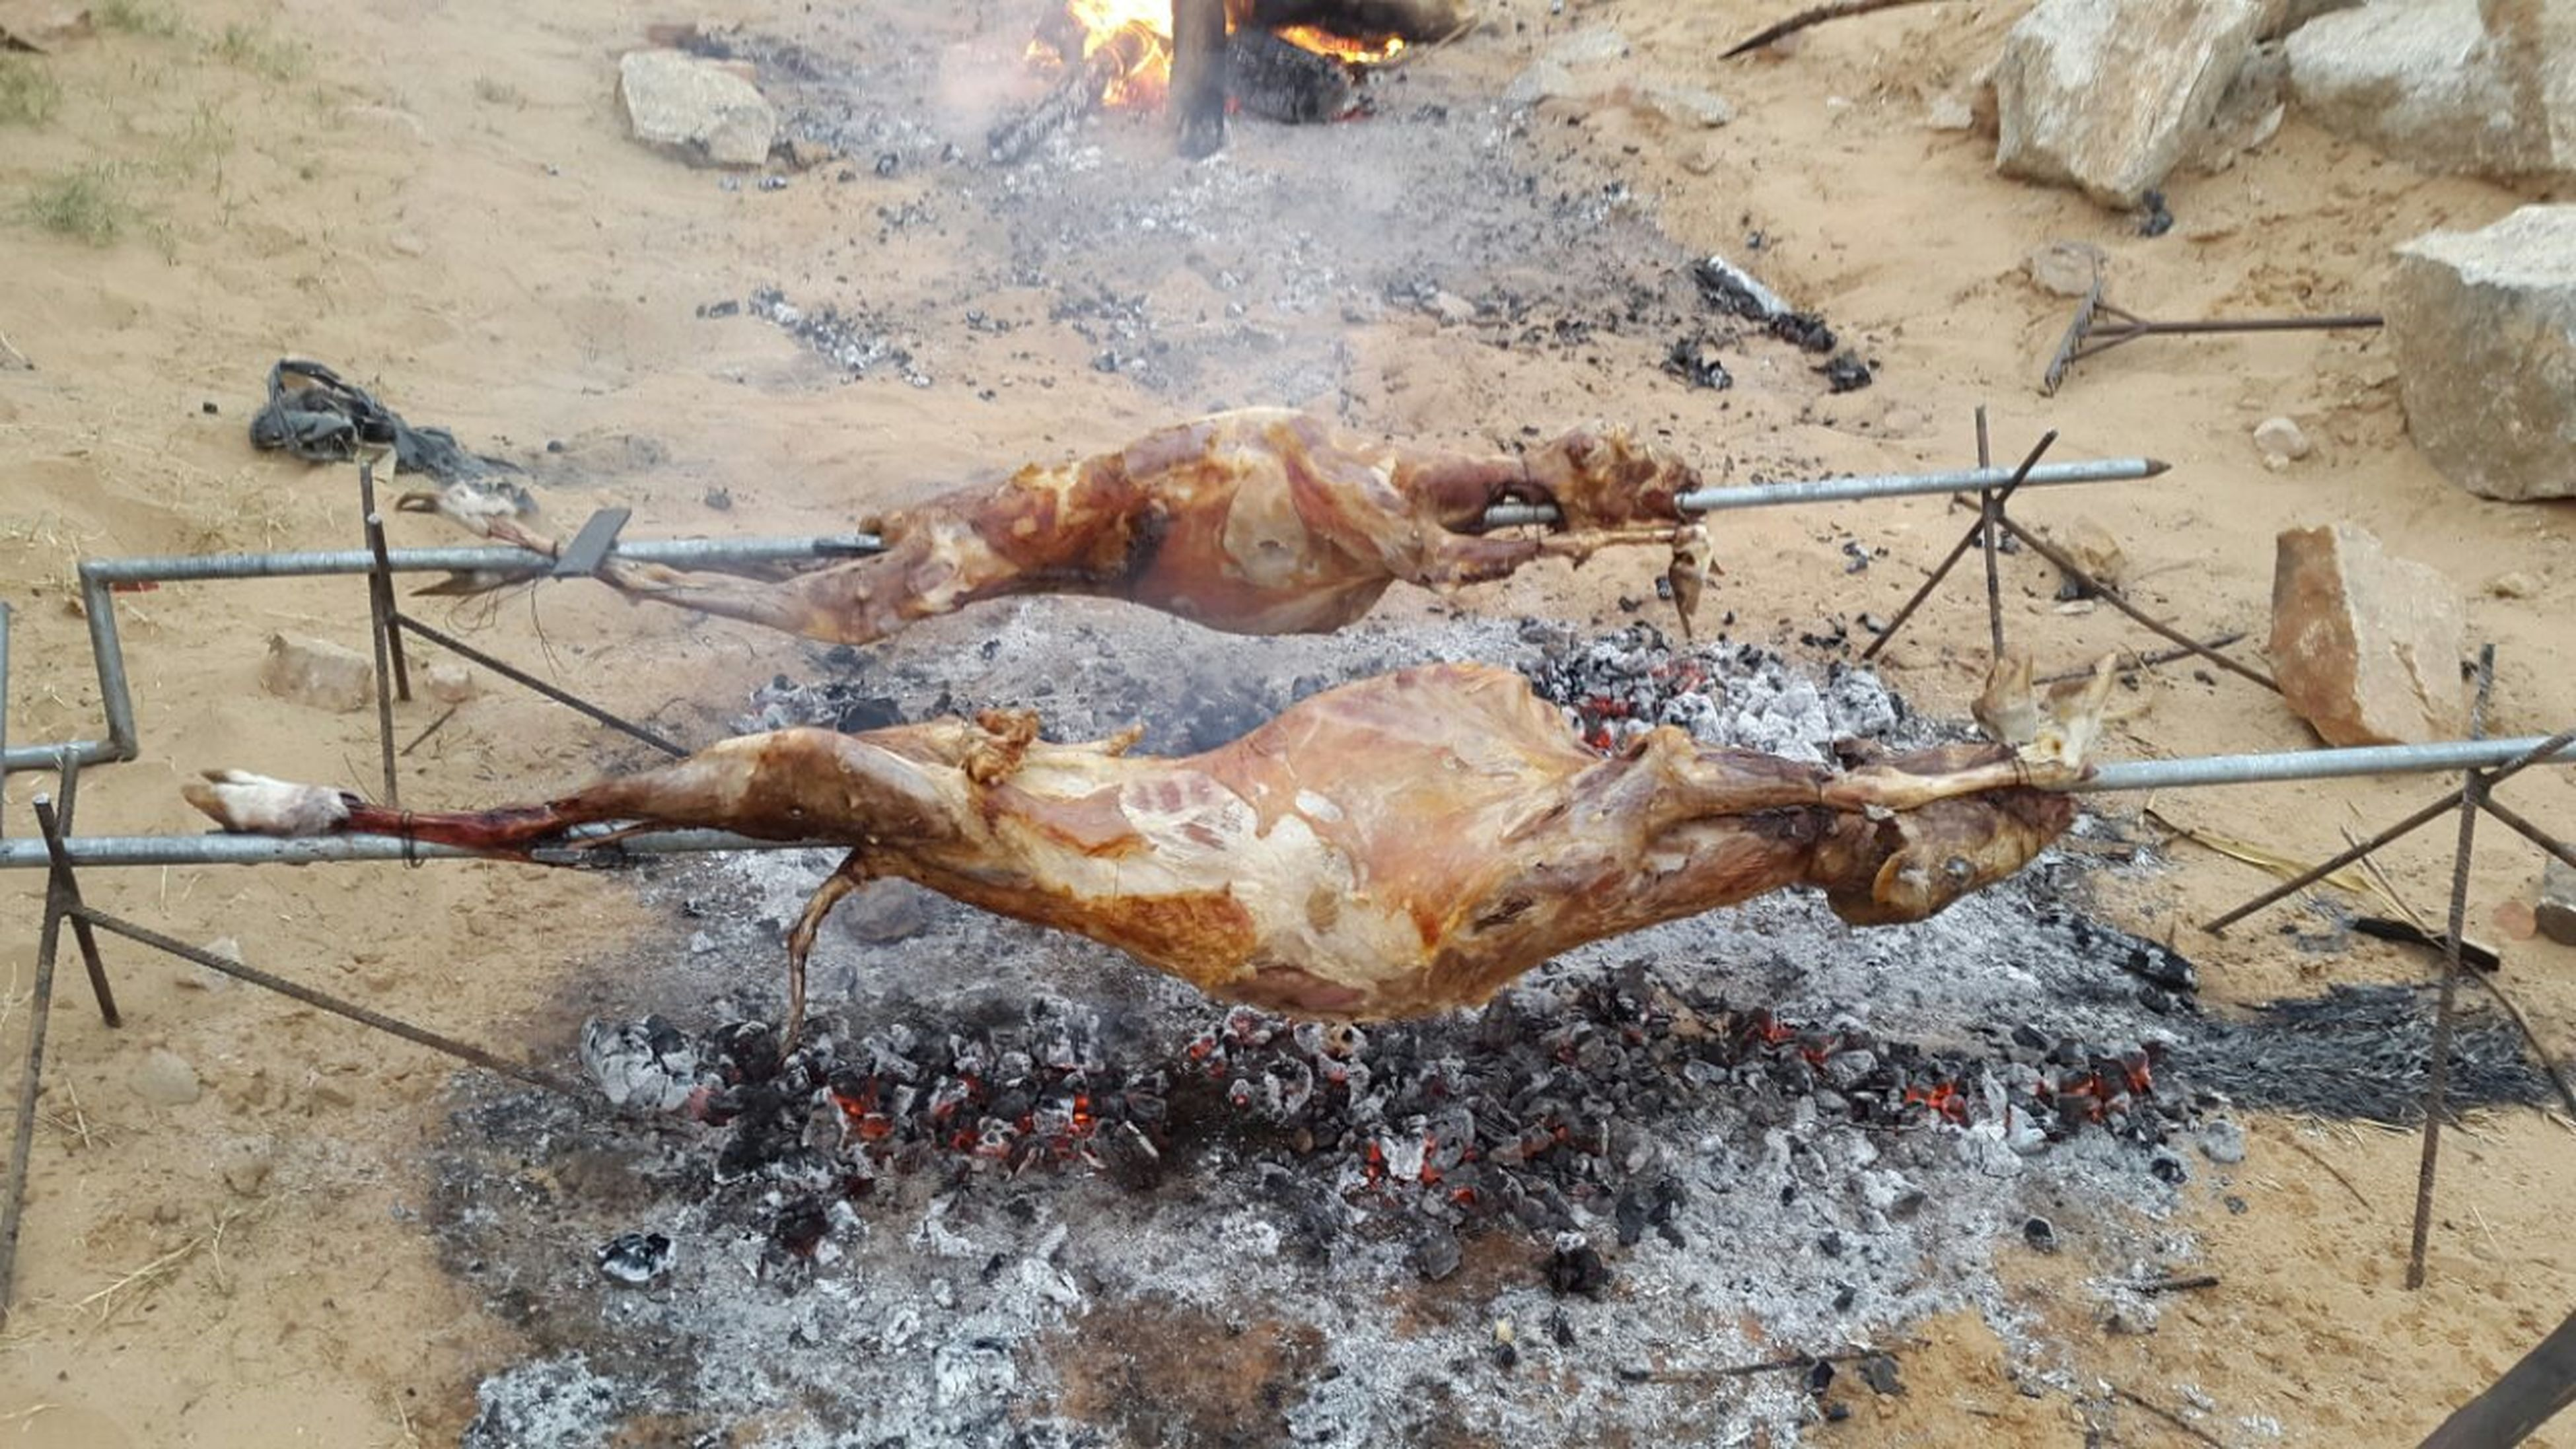 high angle view, heat - temperature, day, no people, messy, firewood, outdoors, dry, environmental issues, flame, dirty, burning, wood - material, dirt, sunlight, log, fire - natural phenomenon, close-up, preparation, dead animal